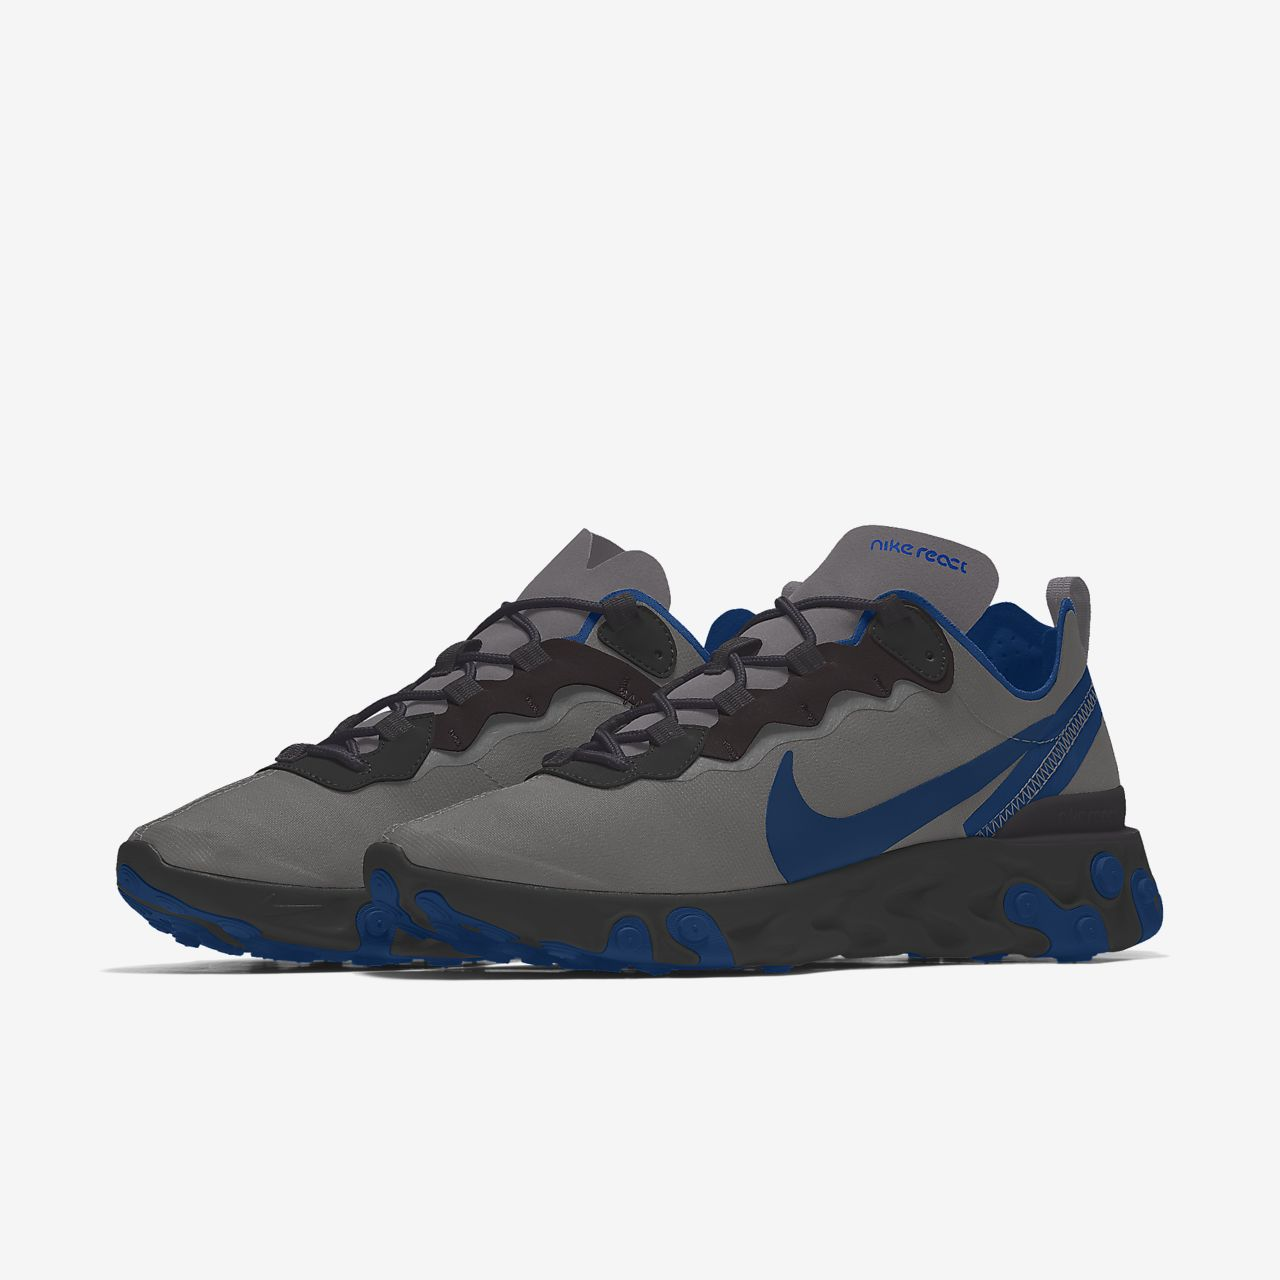 Nike React Element 55 By You personalisierbarer Herren Freizeitschuh